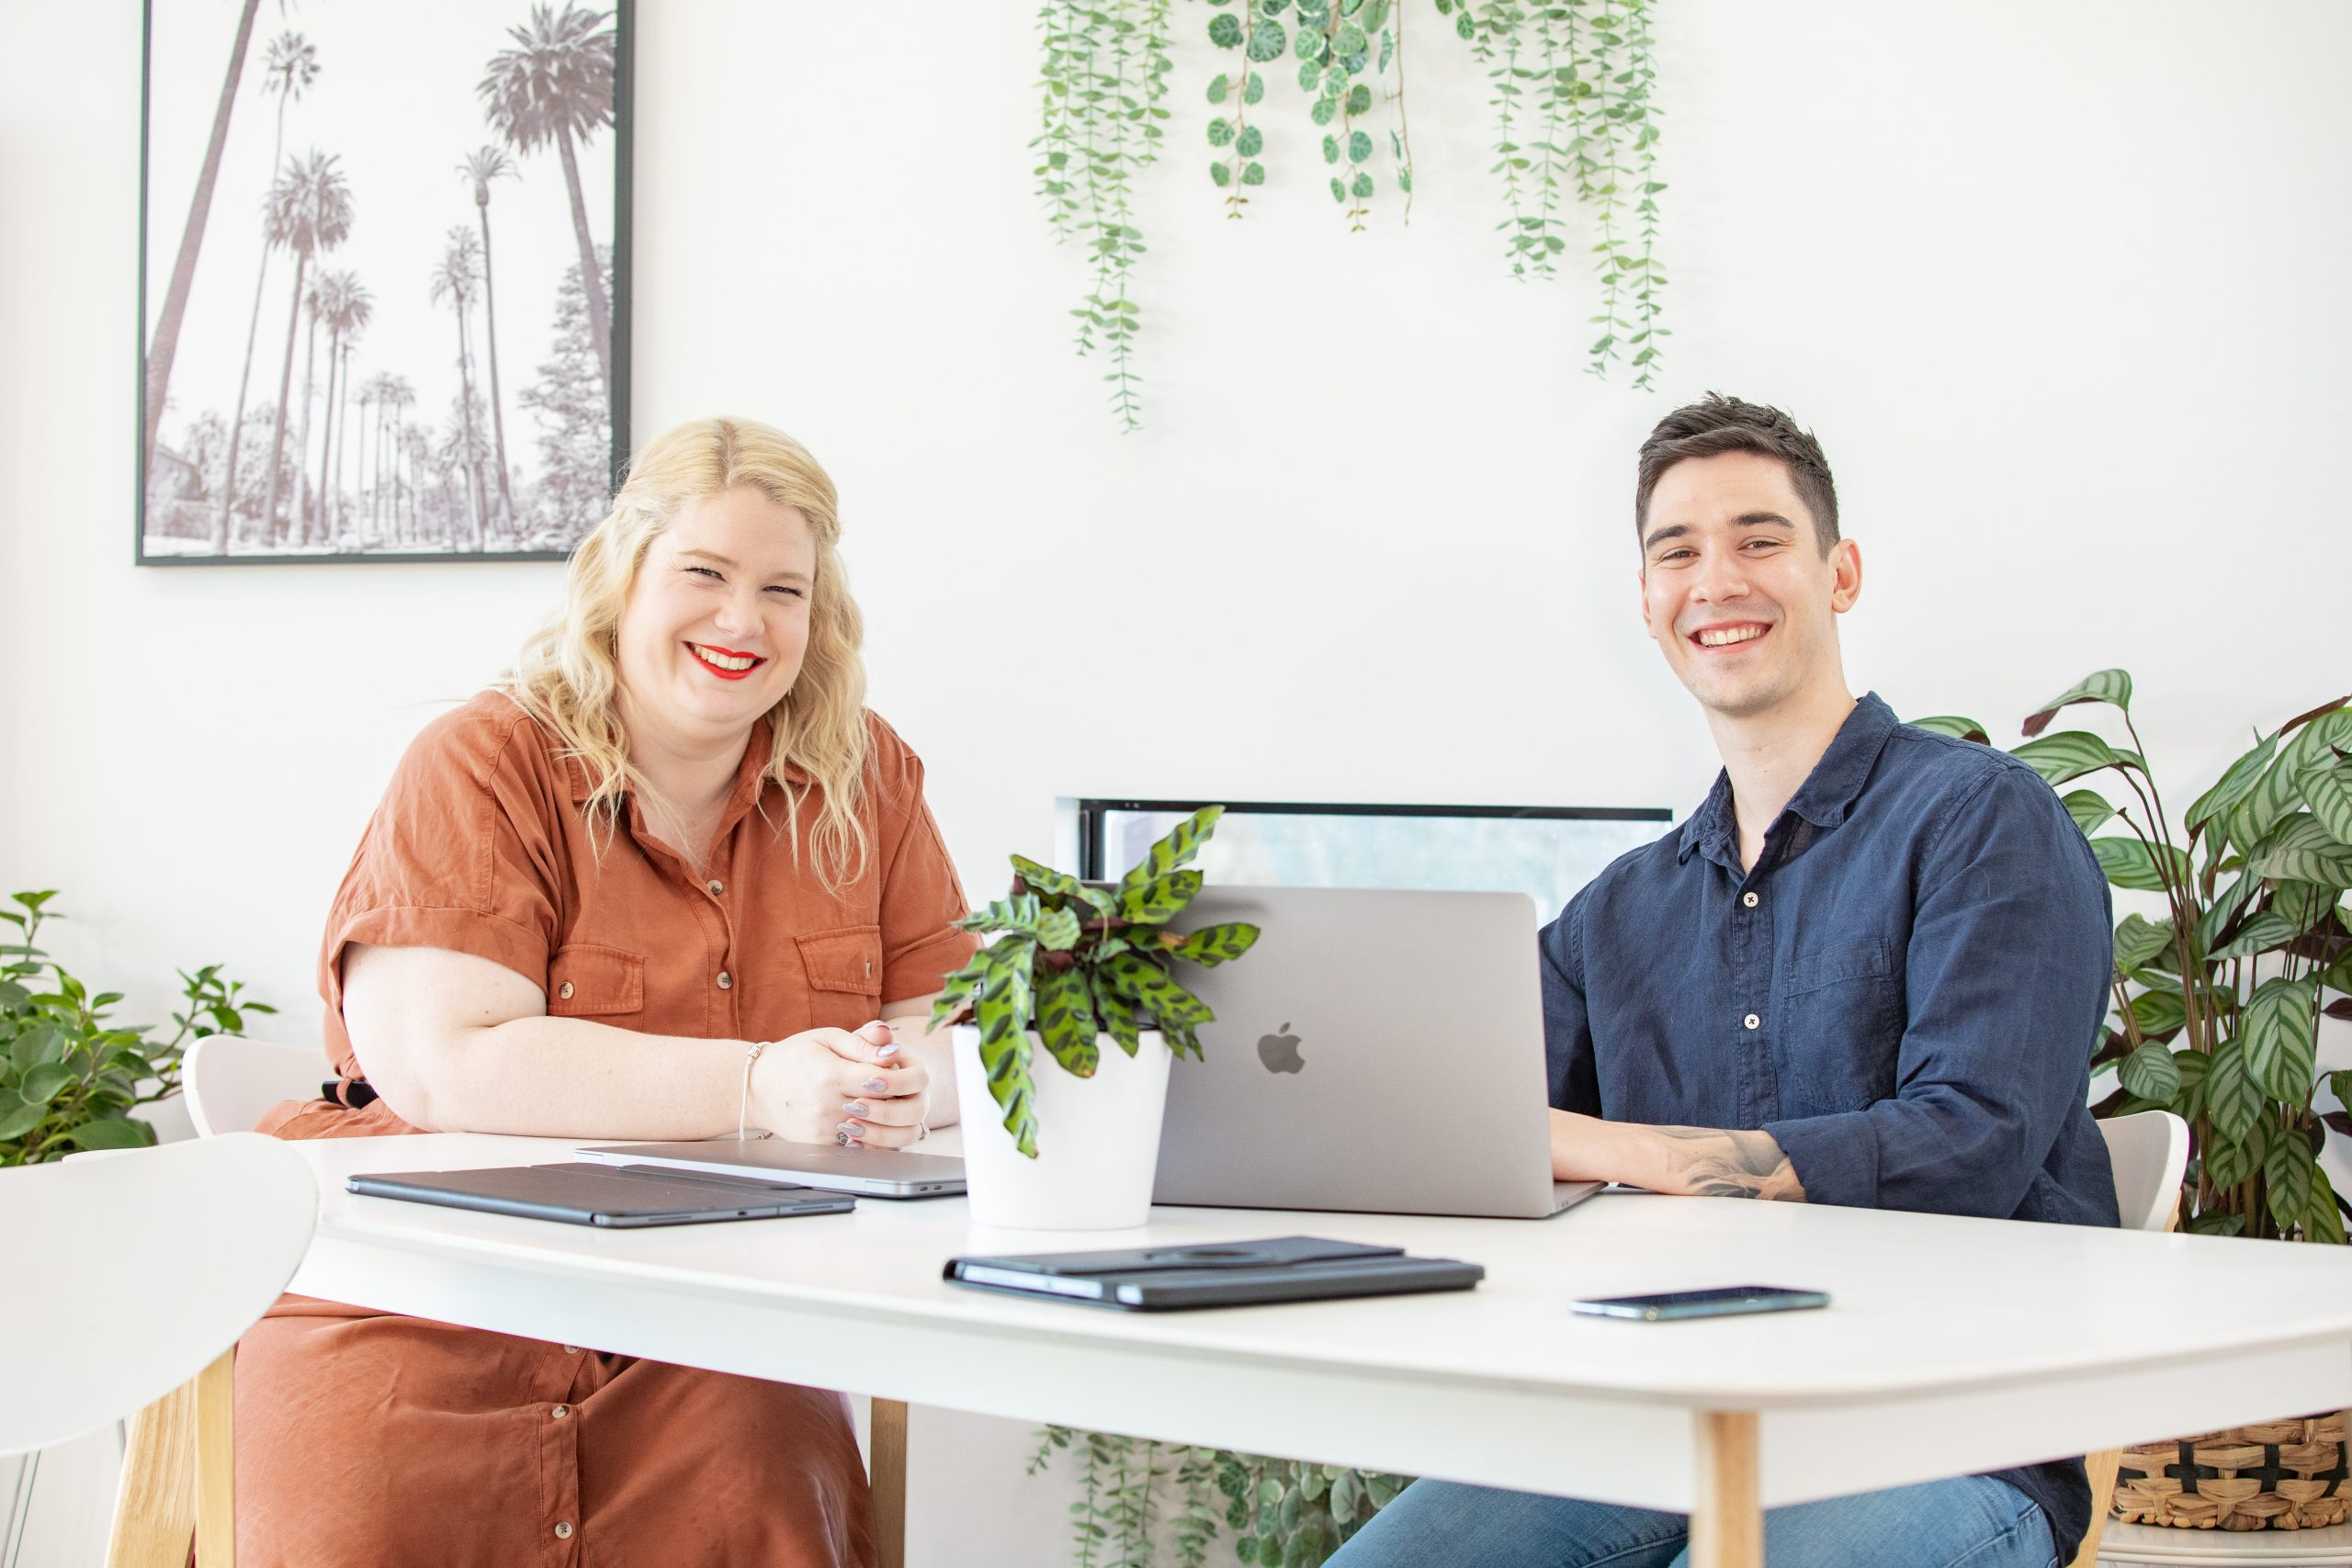 wed design adelaide - members of the DNHQ team